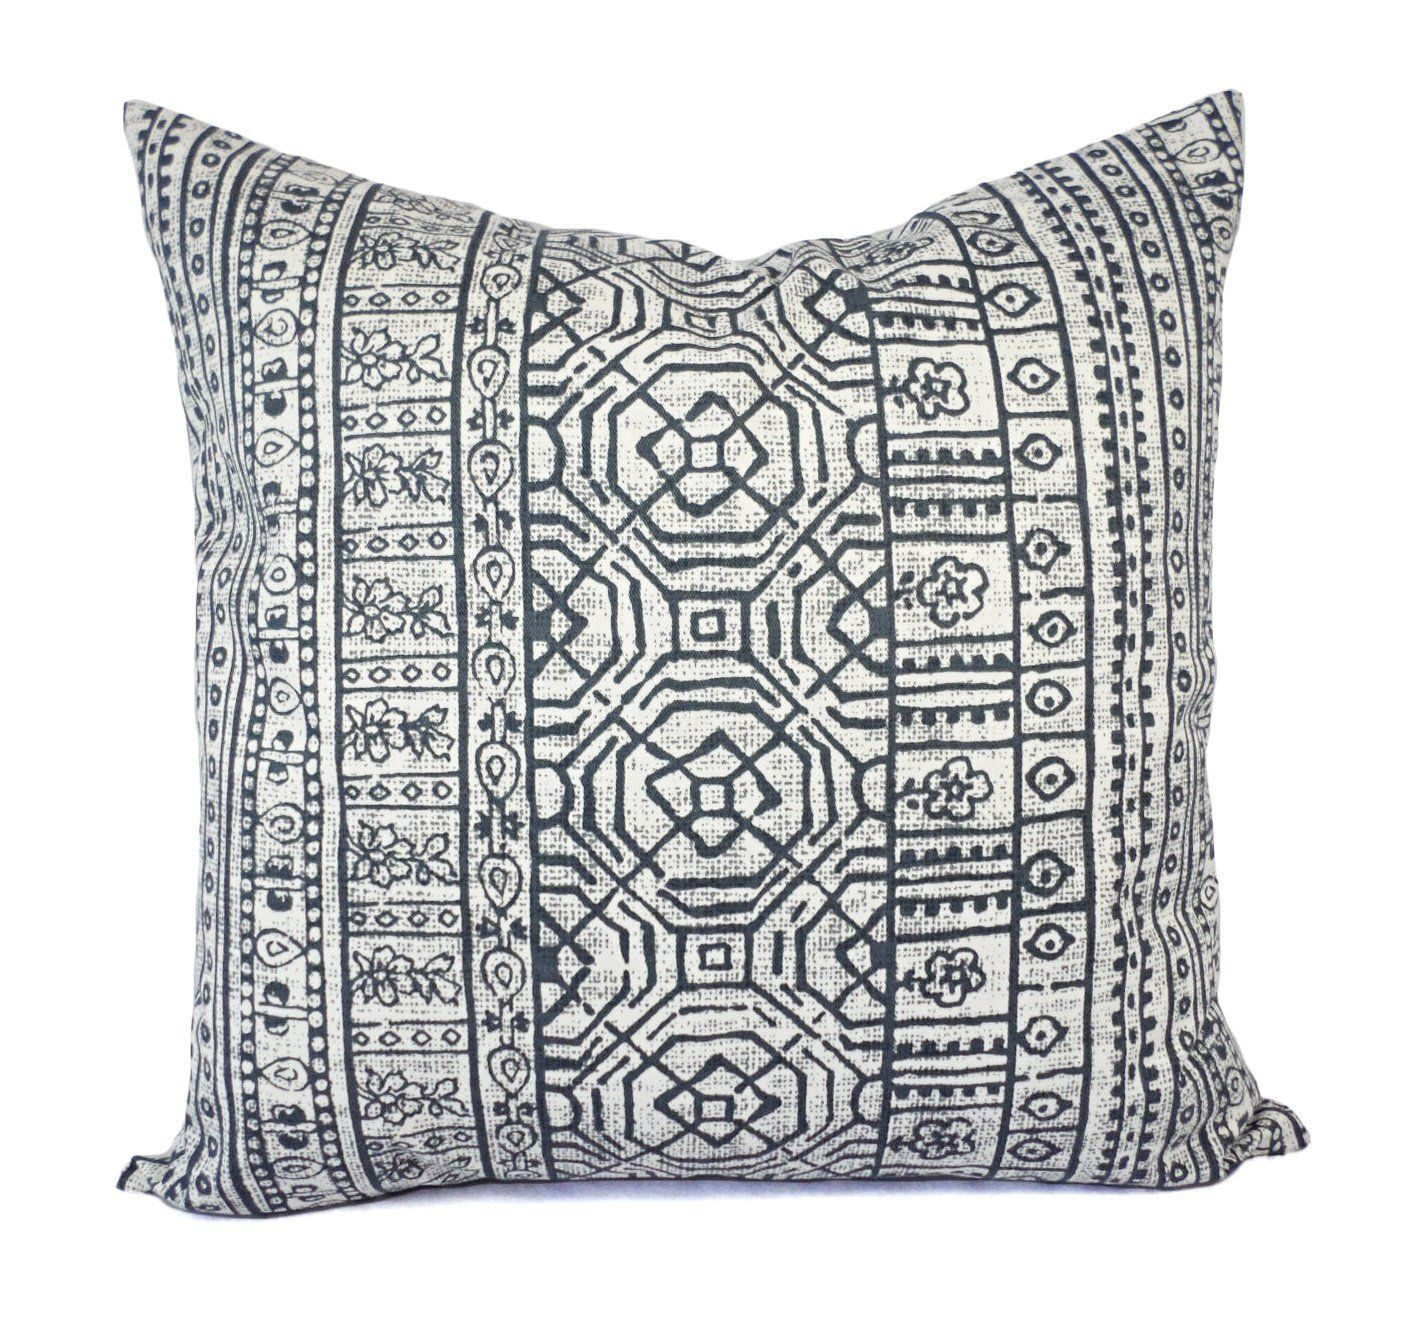 Charcoal Pillows - Grey and White Tribal Pillow Cover - Custom ...